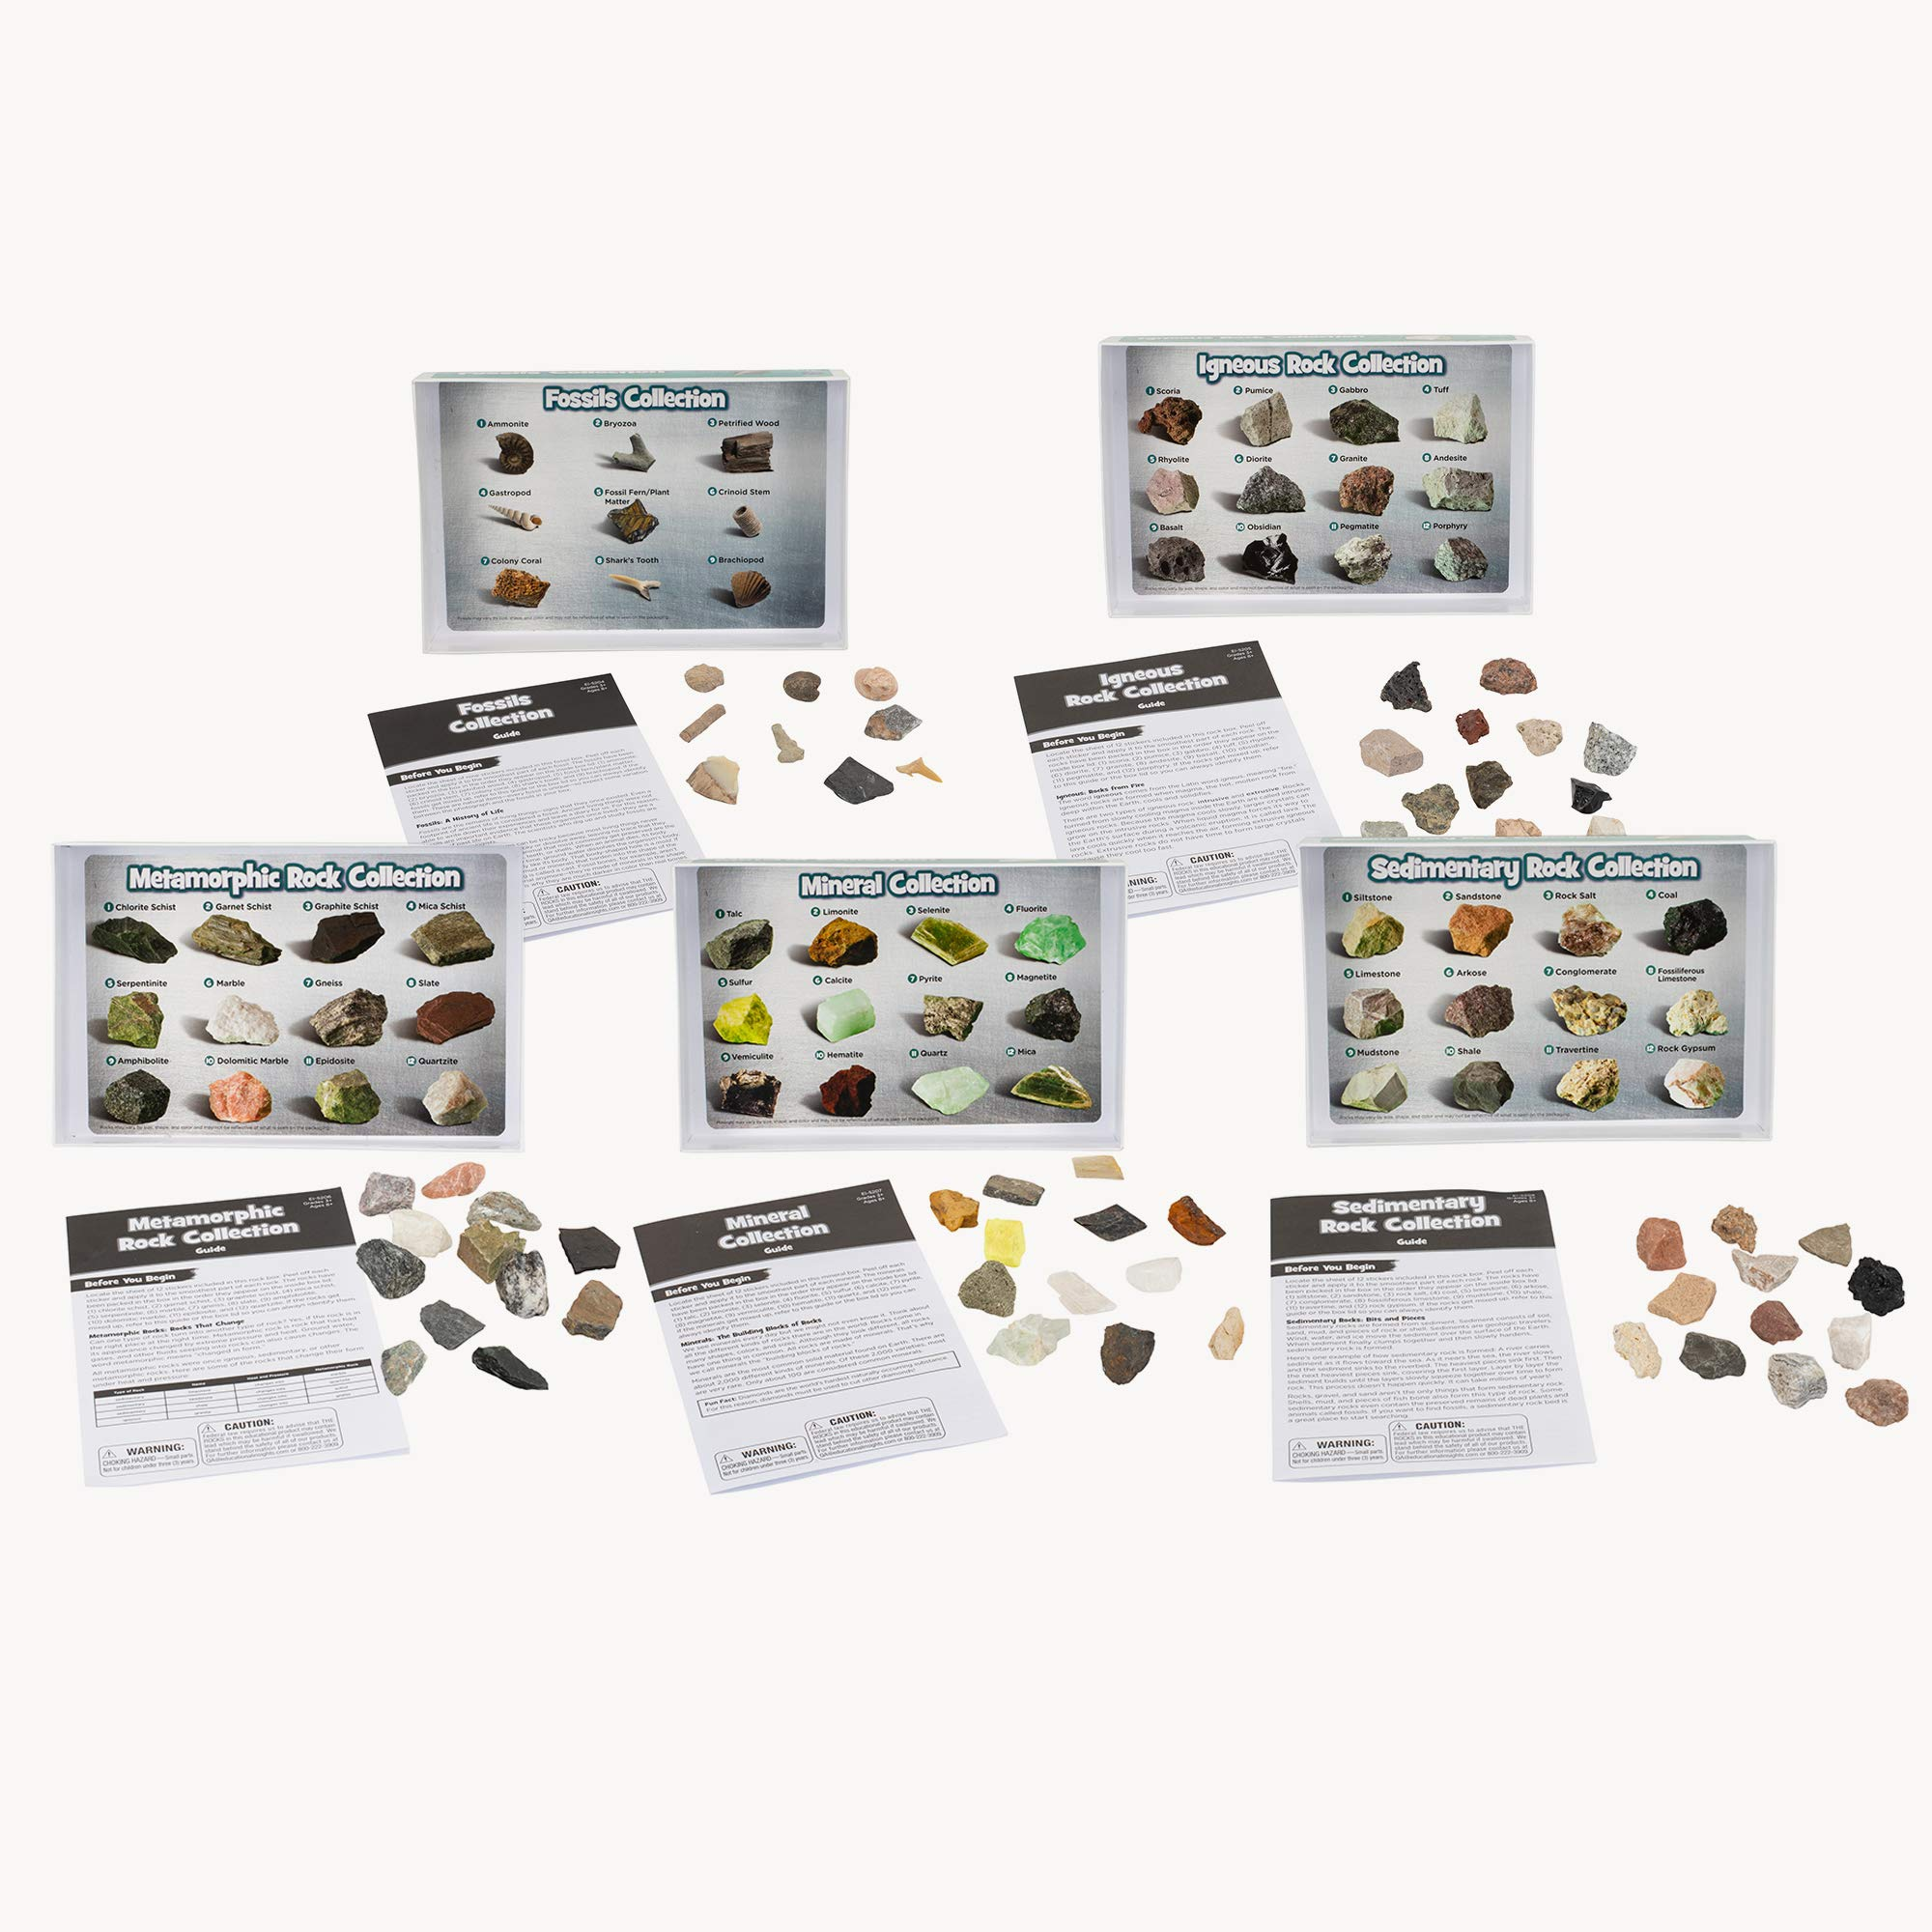 Educational Insights Complete Rock, Mineral, and Fossil Collection, Ages 8 and up, (57 pieces with storage tray)